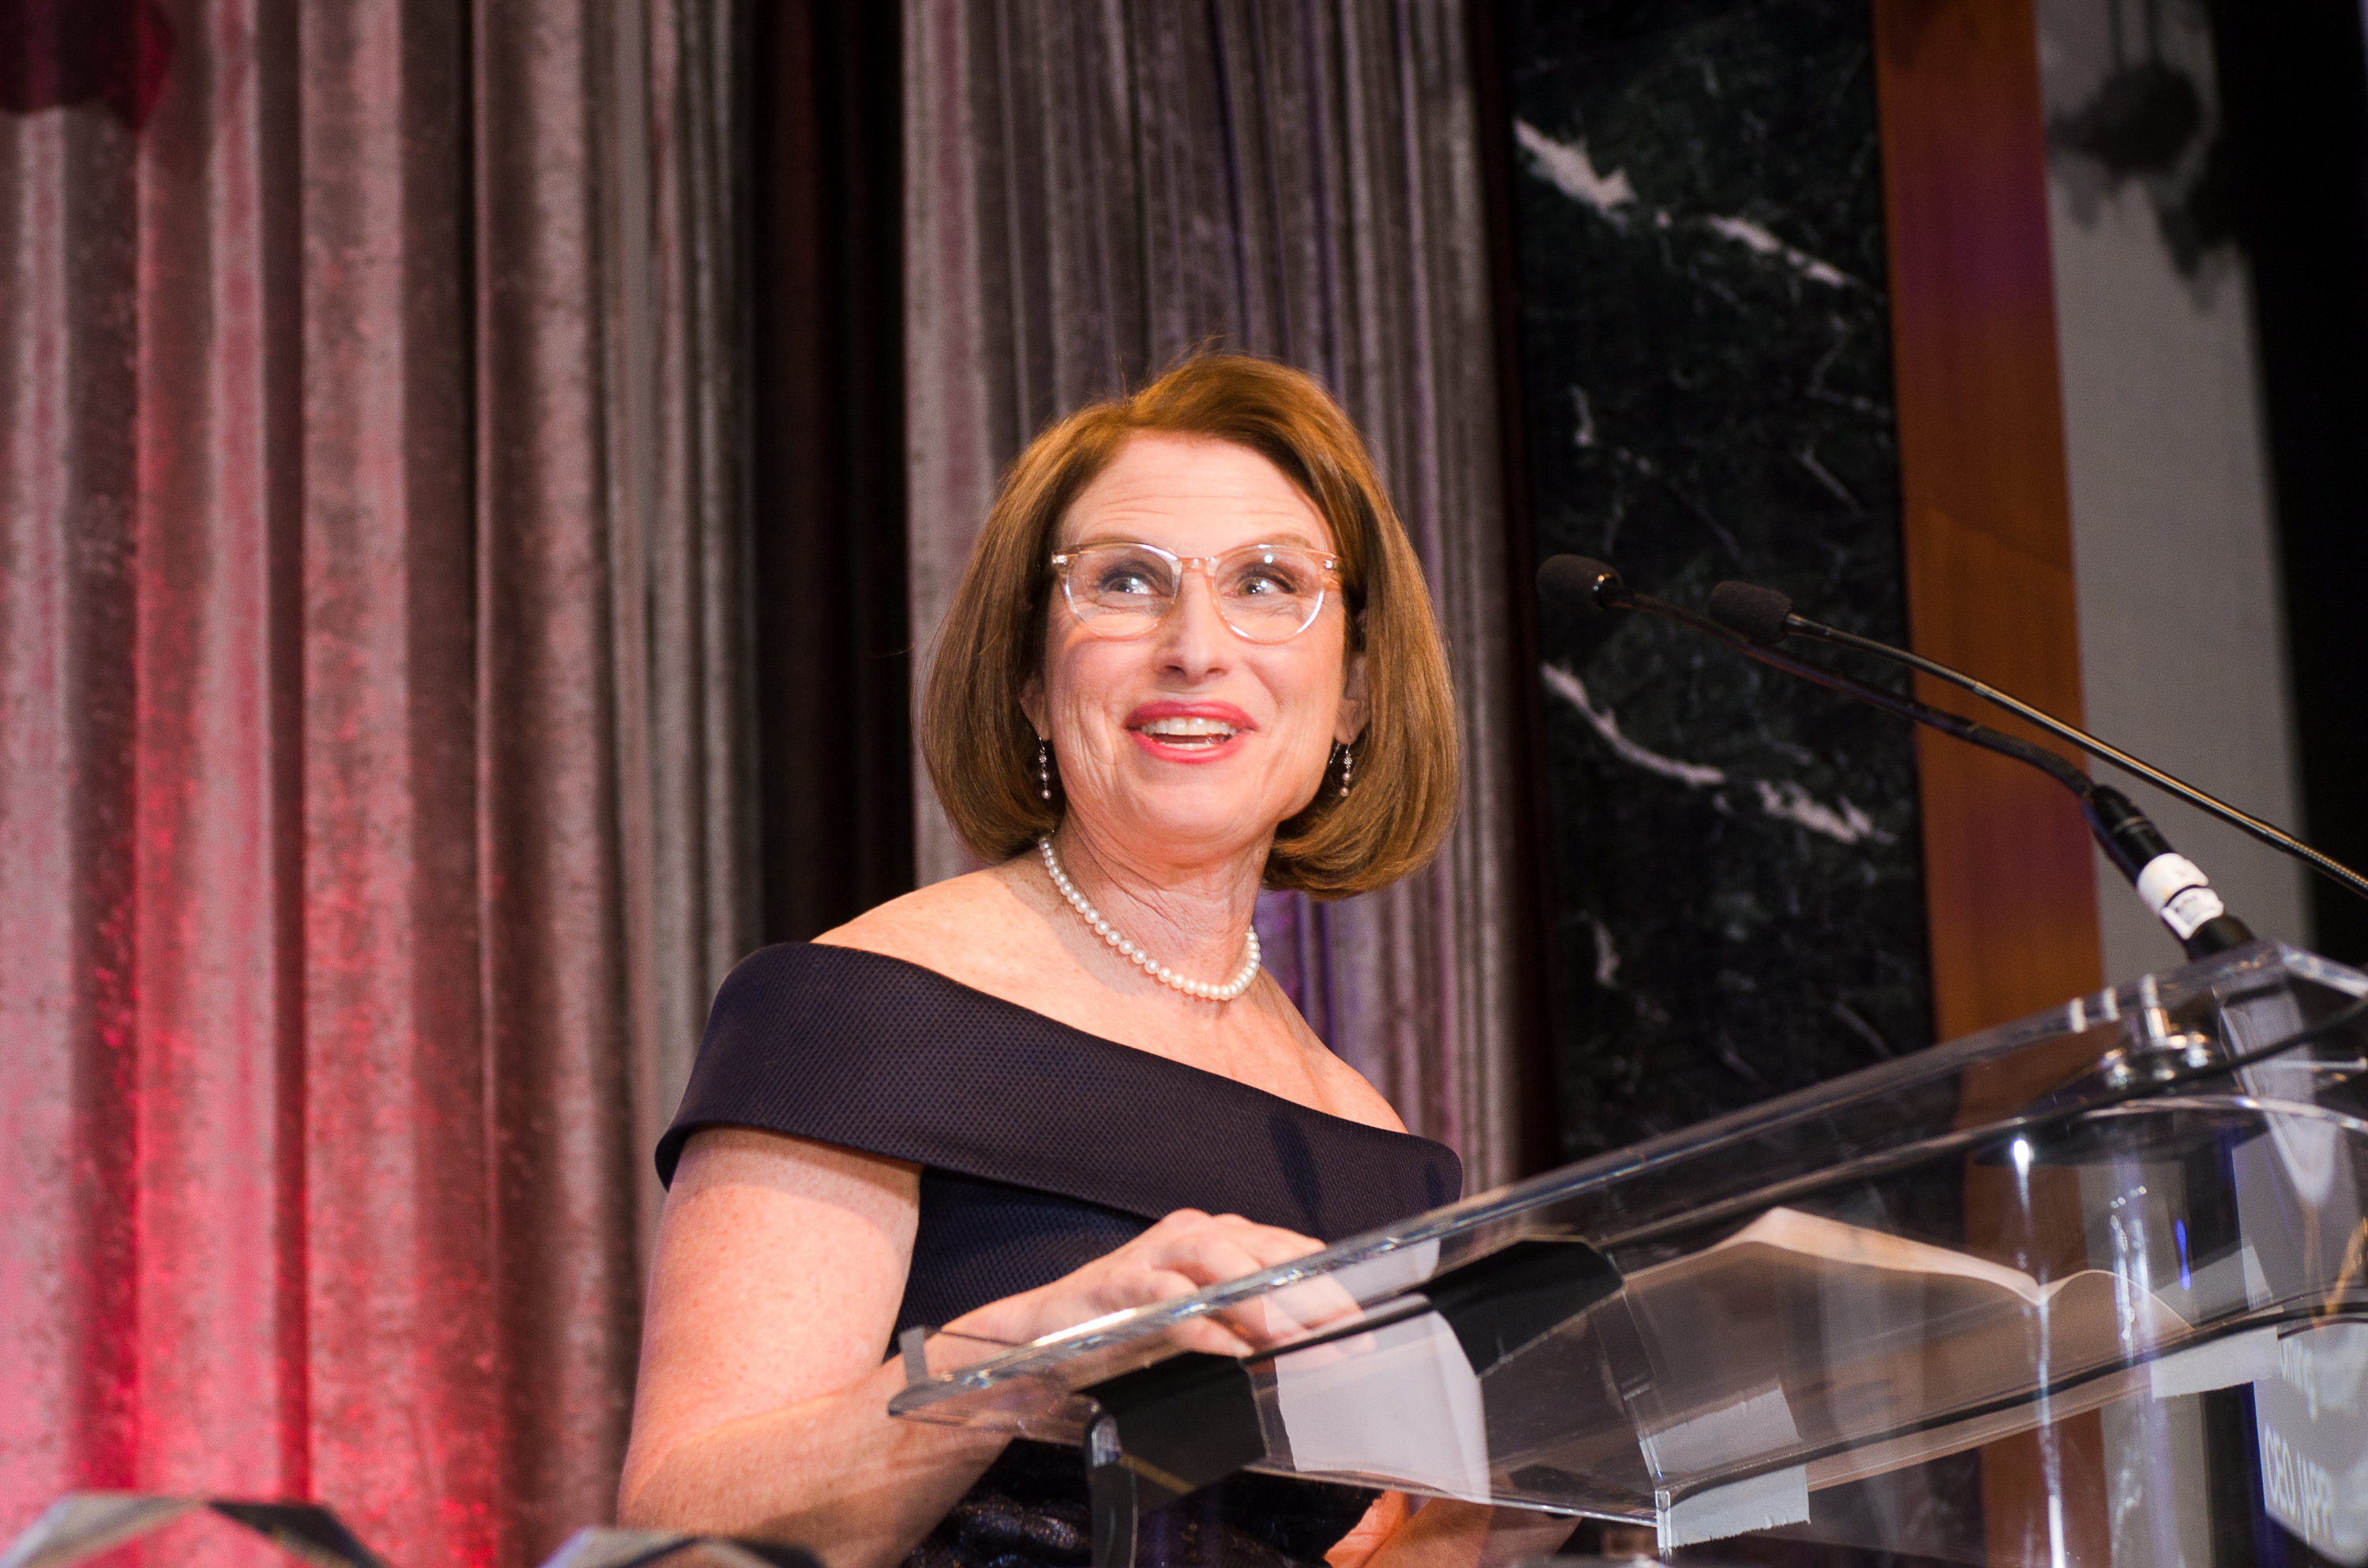 Catalyst President and CEO, Lorraine Hariton, urges corporate leaders to model inclusion.